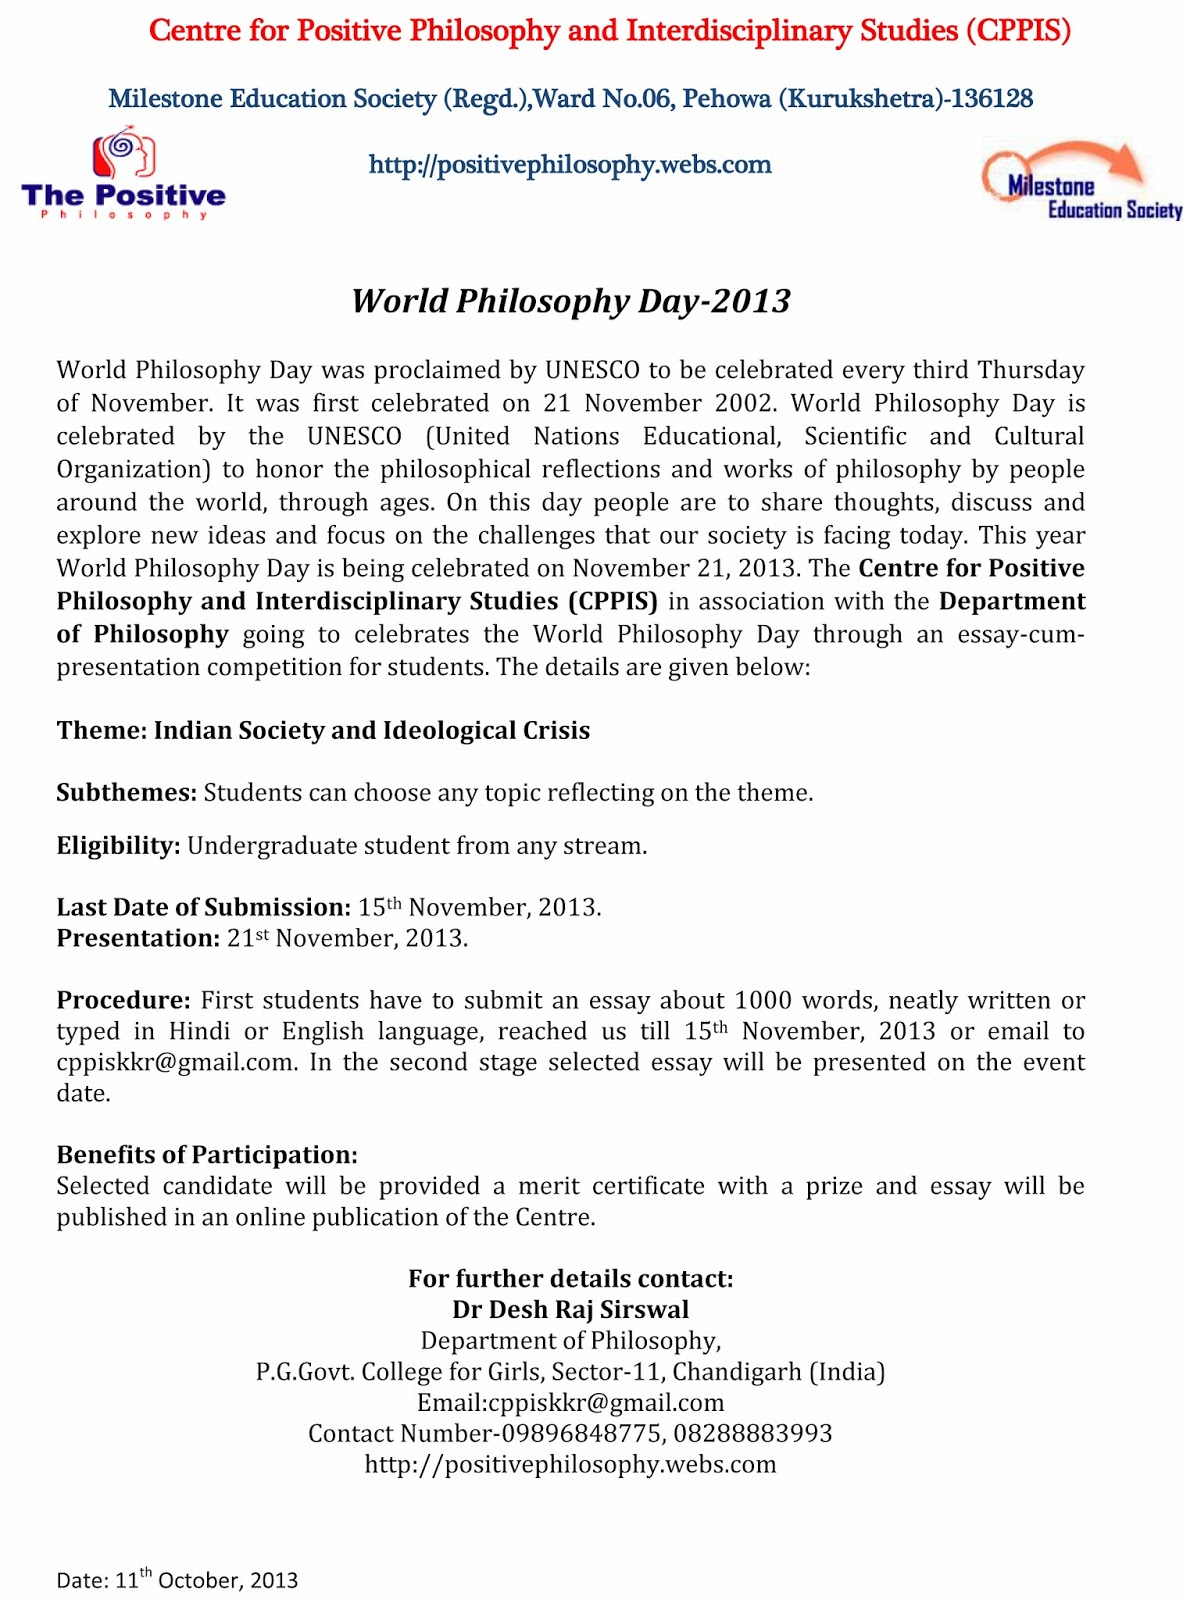 sppis haryana  world philosophy day 2013